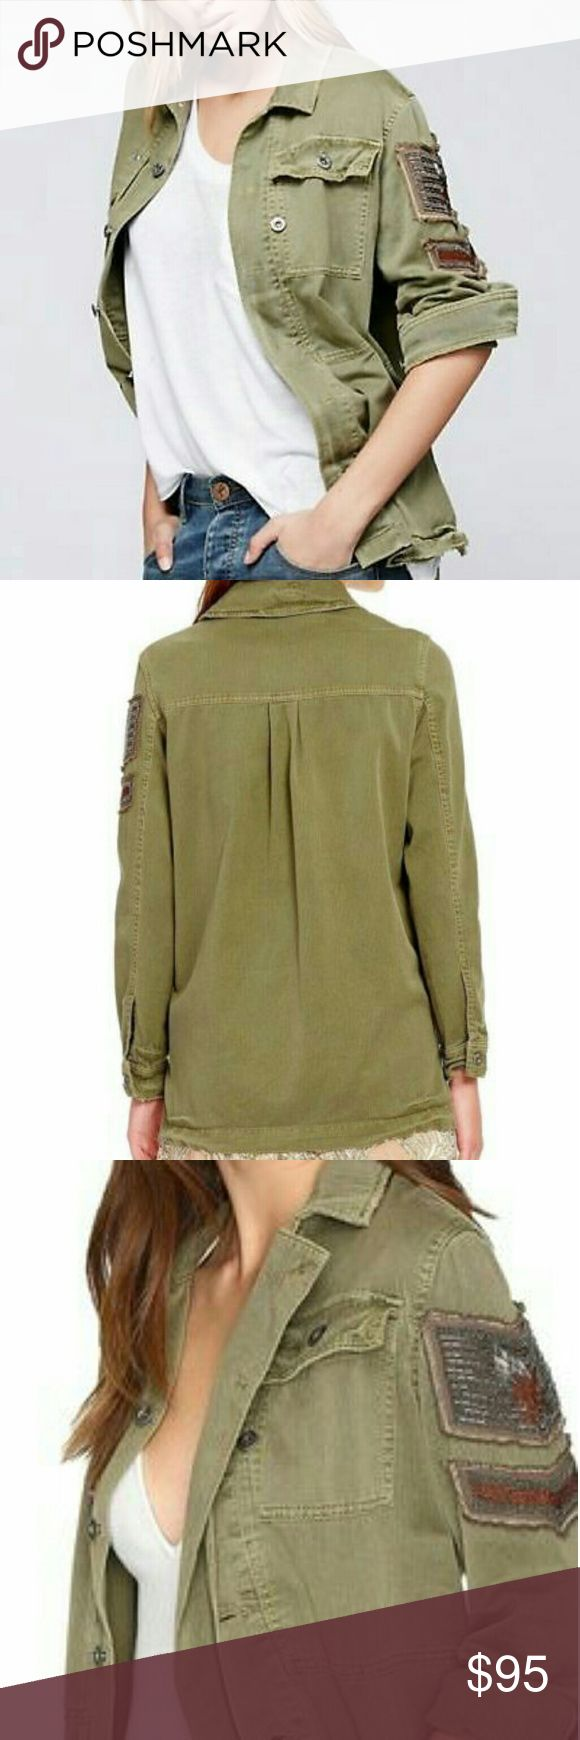 Free People Oversized Military Jacket Brand new with tags Free People olive green embellished Military style shirt jacket size small.  Fits a s/m/l Free People Jackets & Coats